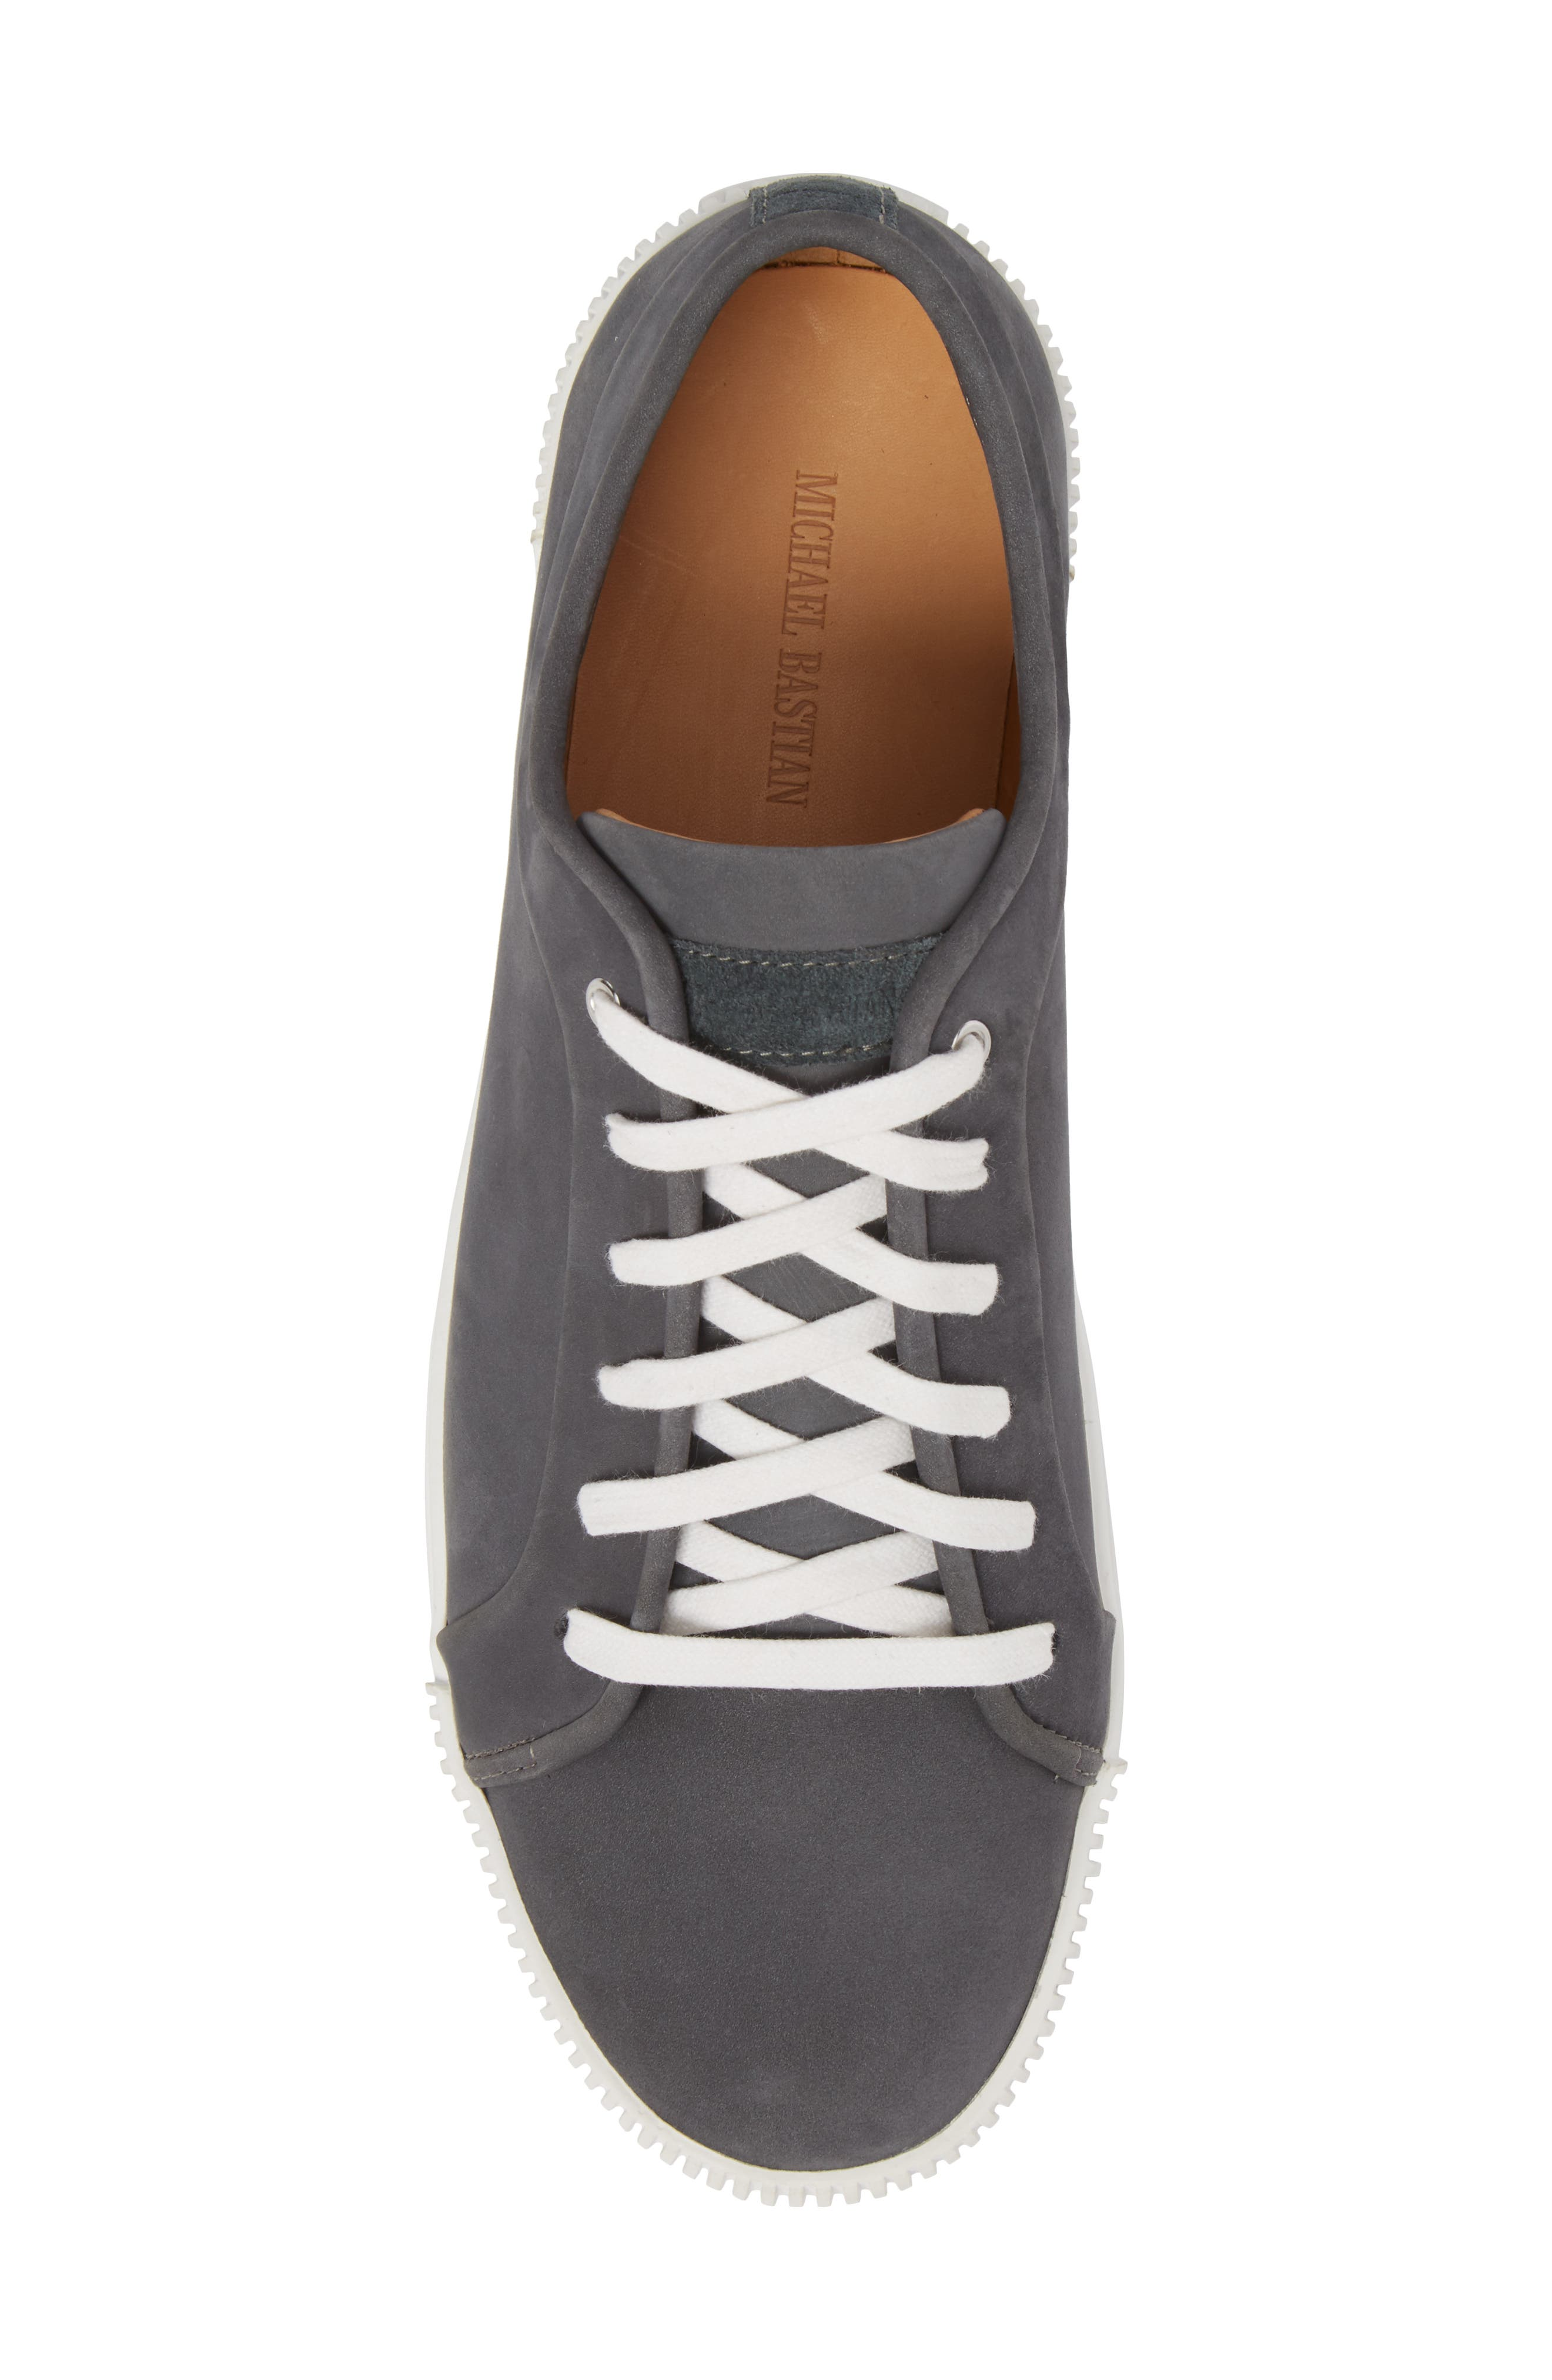 Lyons Low Top Sneaker,                             Alternate thumbnail 5, color,                             020